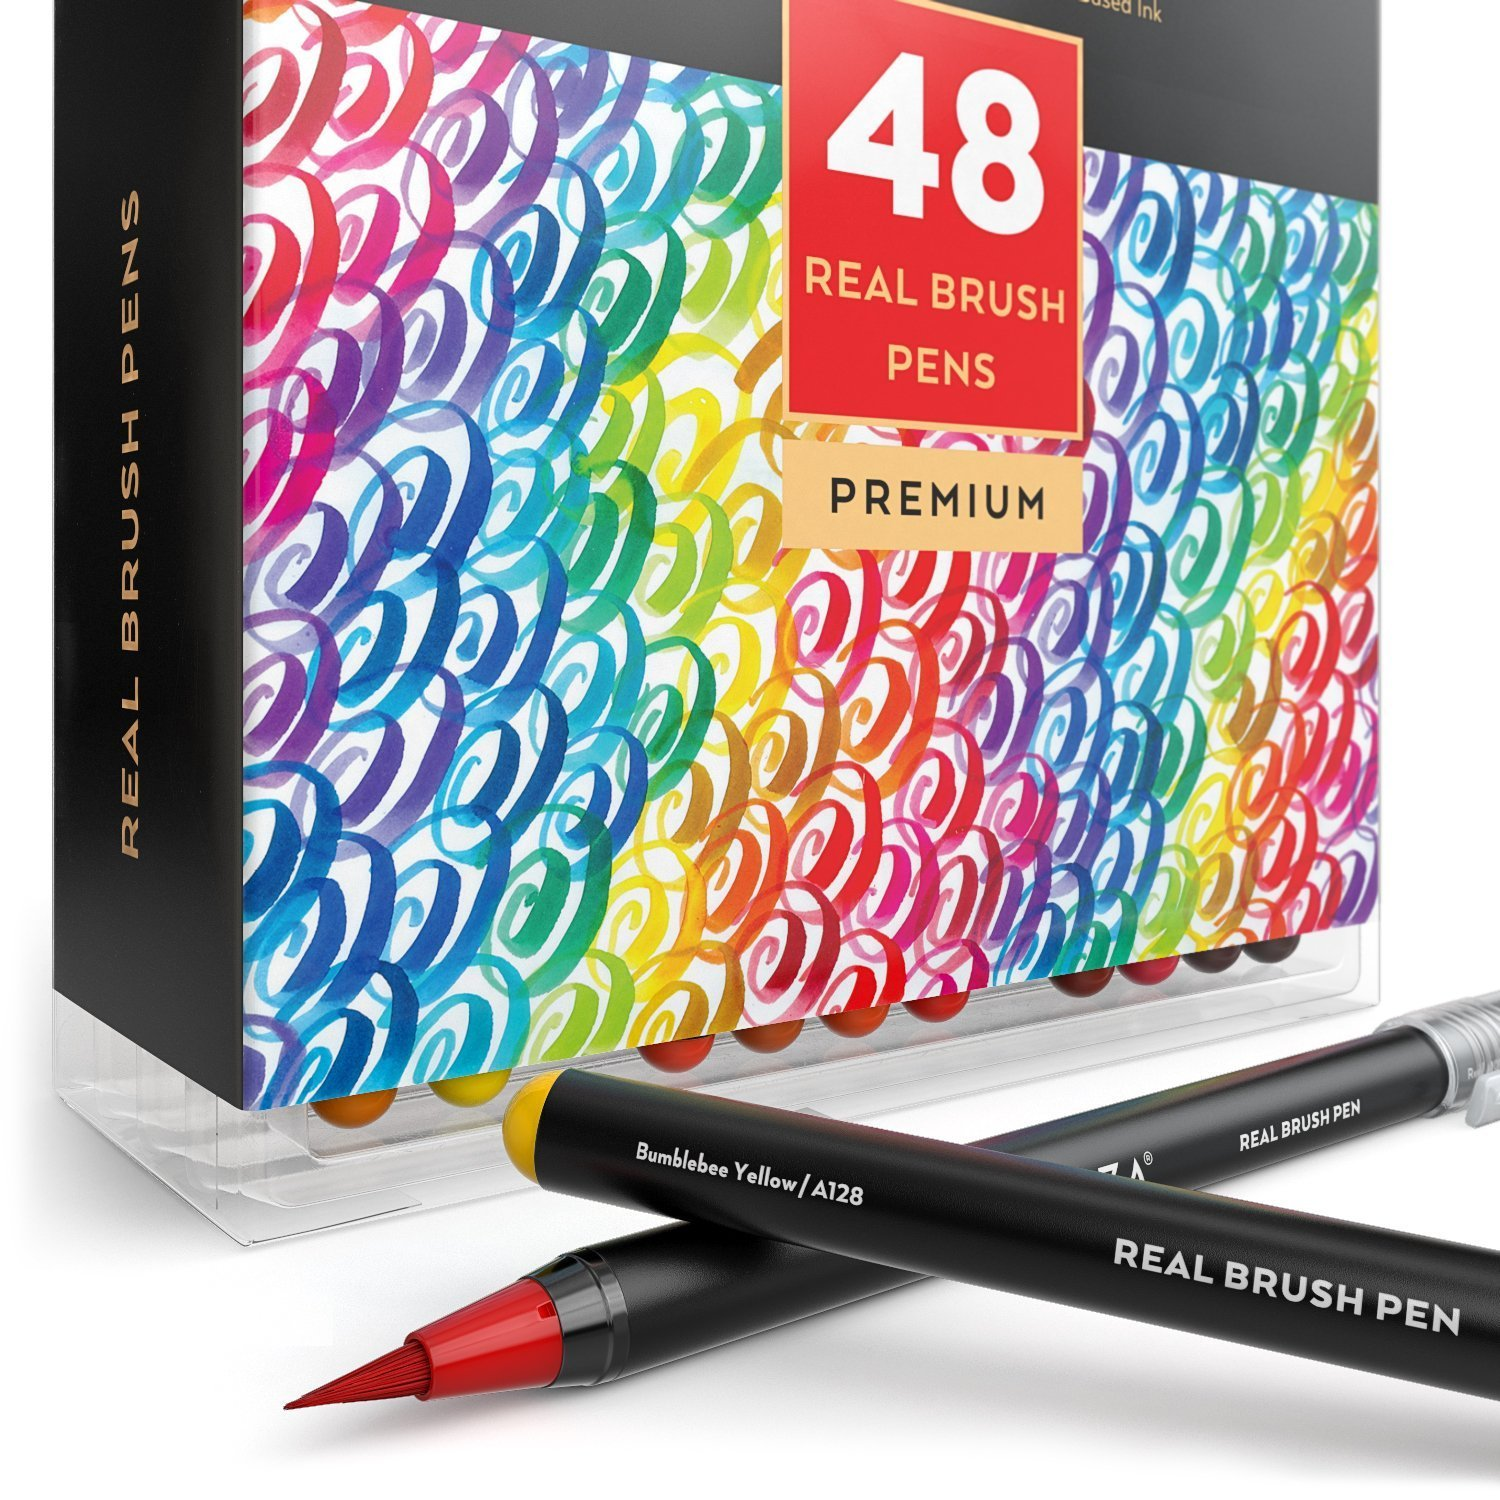 Arteza Real Brush Pens, 48 Paint Markers with Flexible Brush Tips, Professional Watercolor Pens for Painting, Drawing, Coloring & More, 100% Nontoxic, Multiple Colors